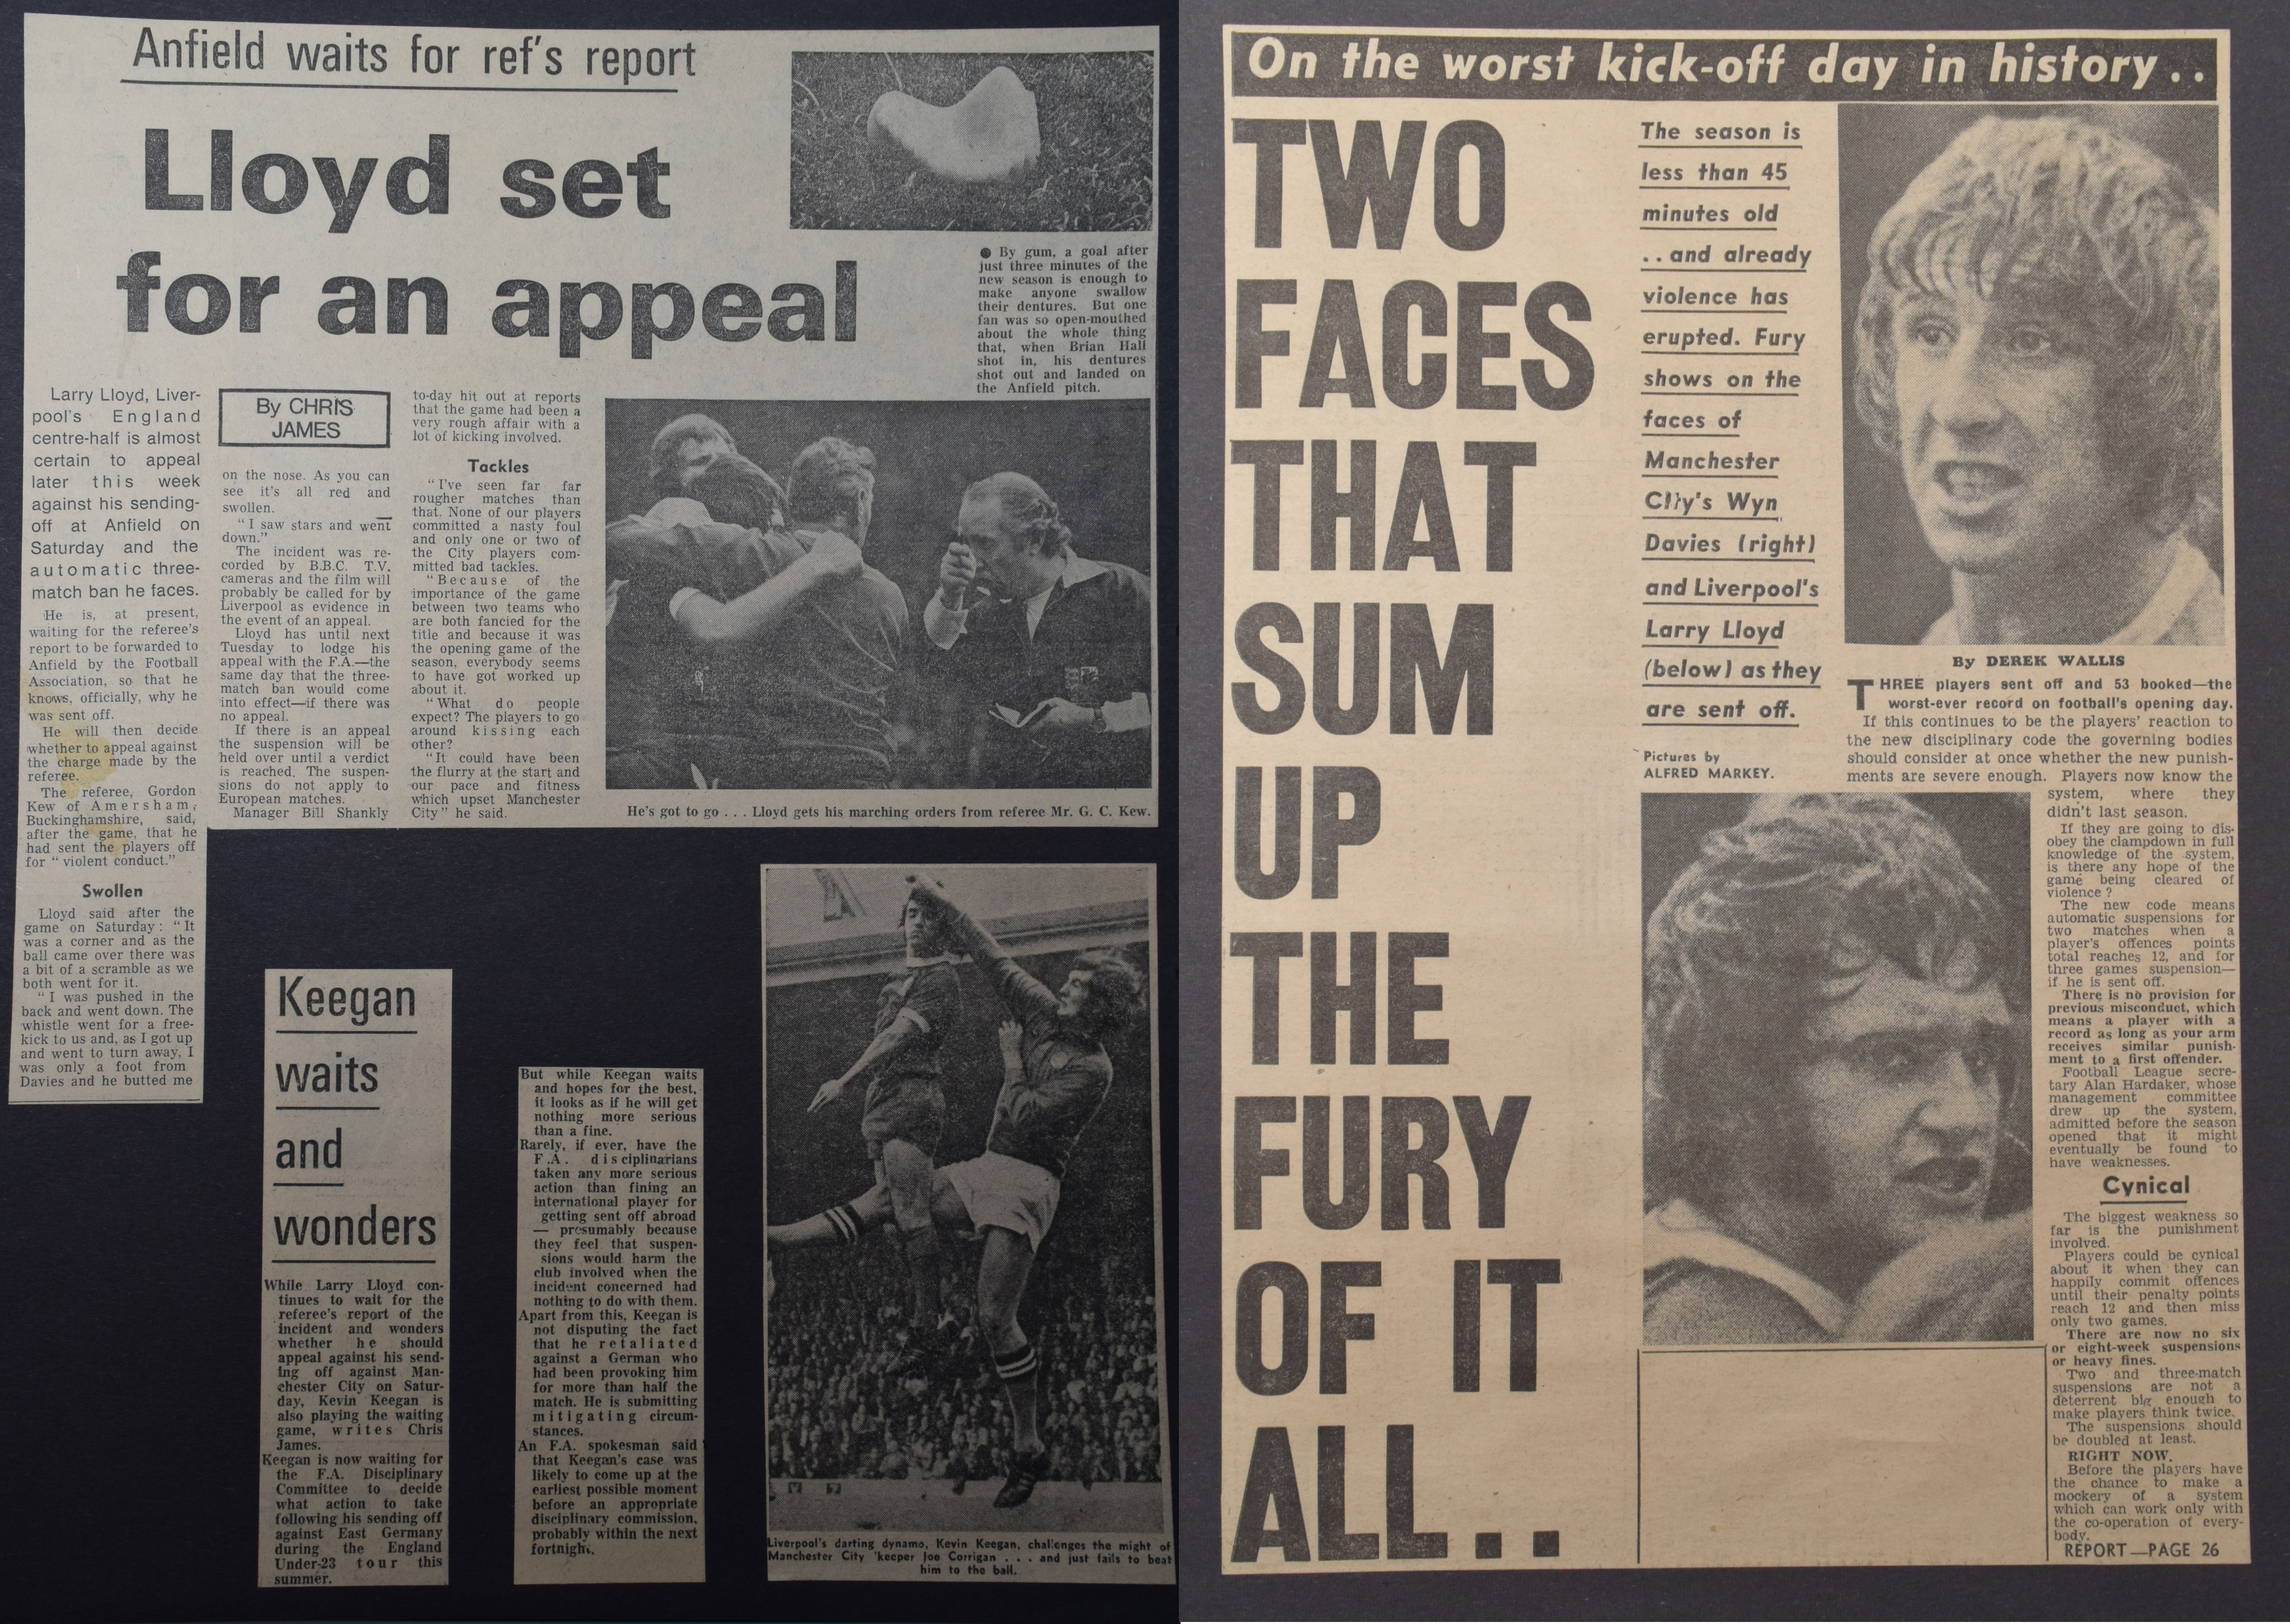 Lloyd set for an appeal - August 1972